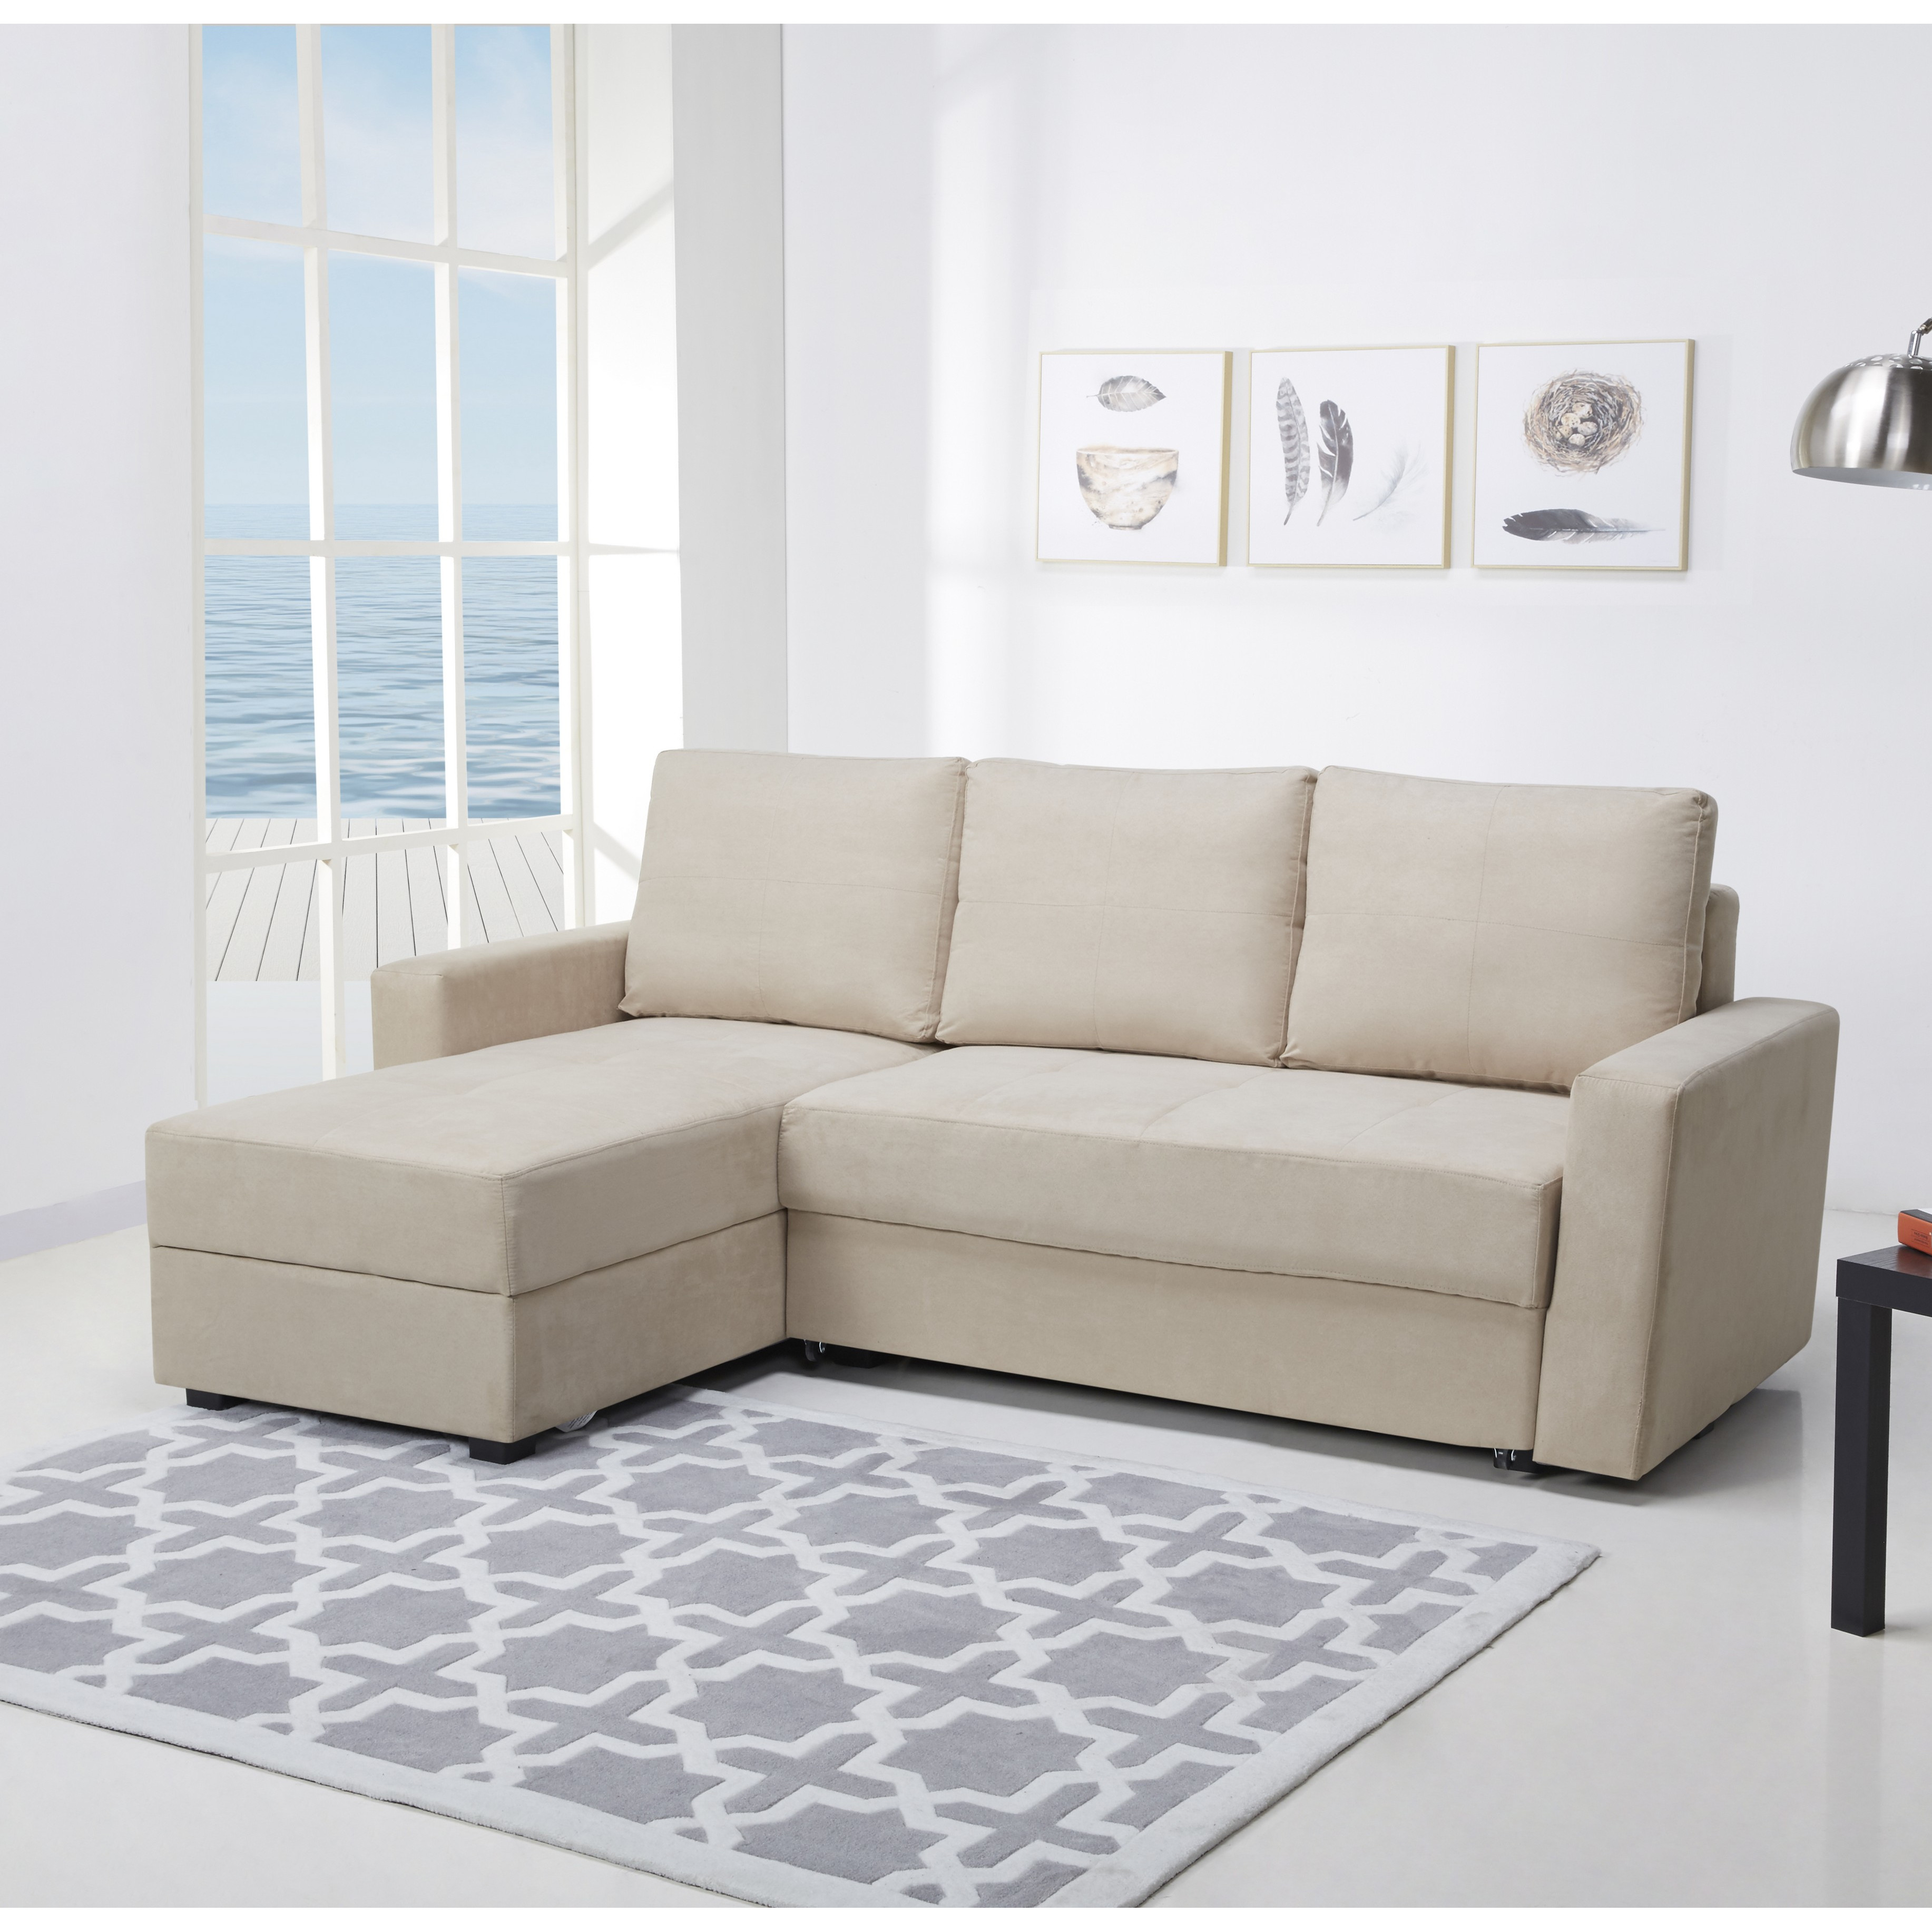 Bed Settee Home Page Furniture Bed Settee Bed Settees